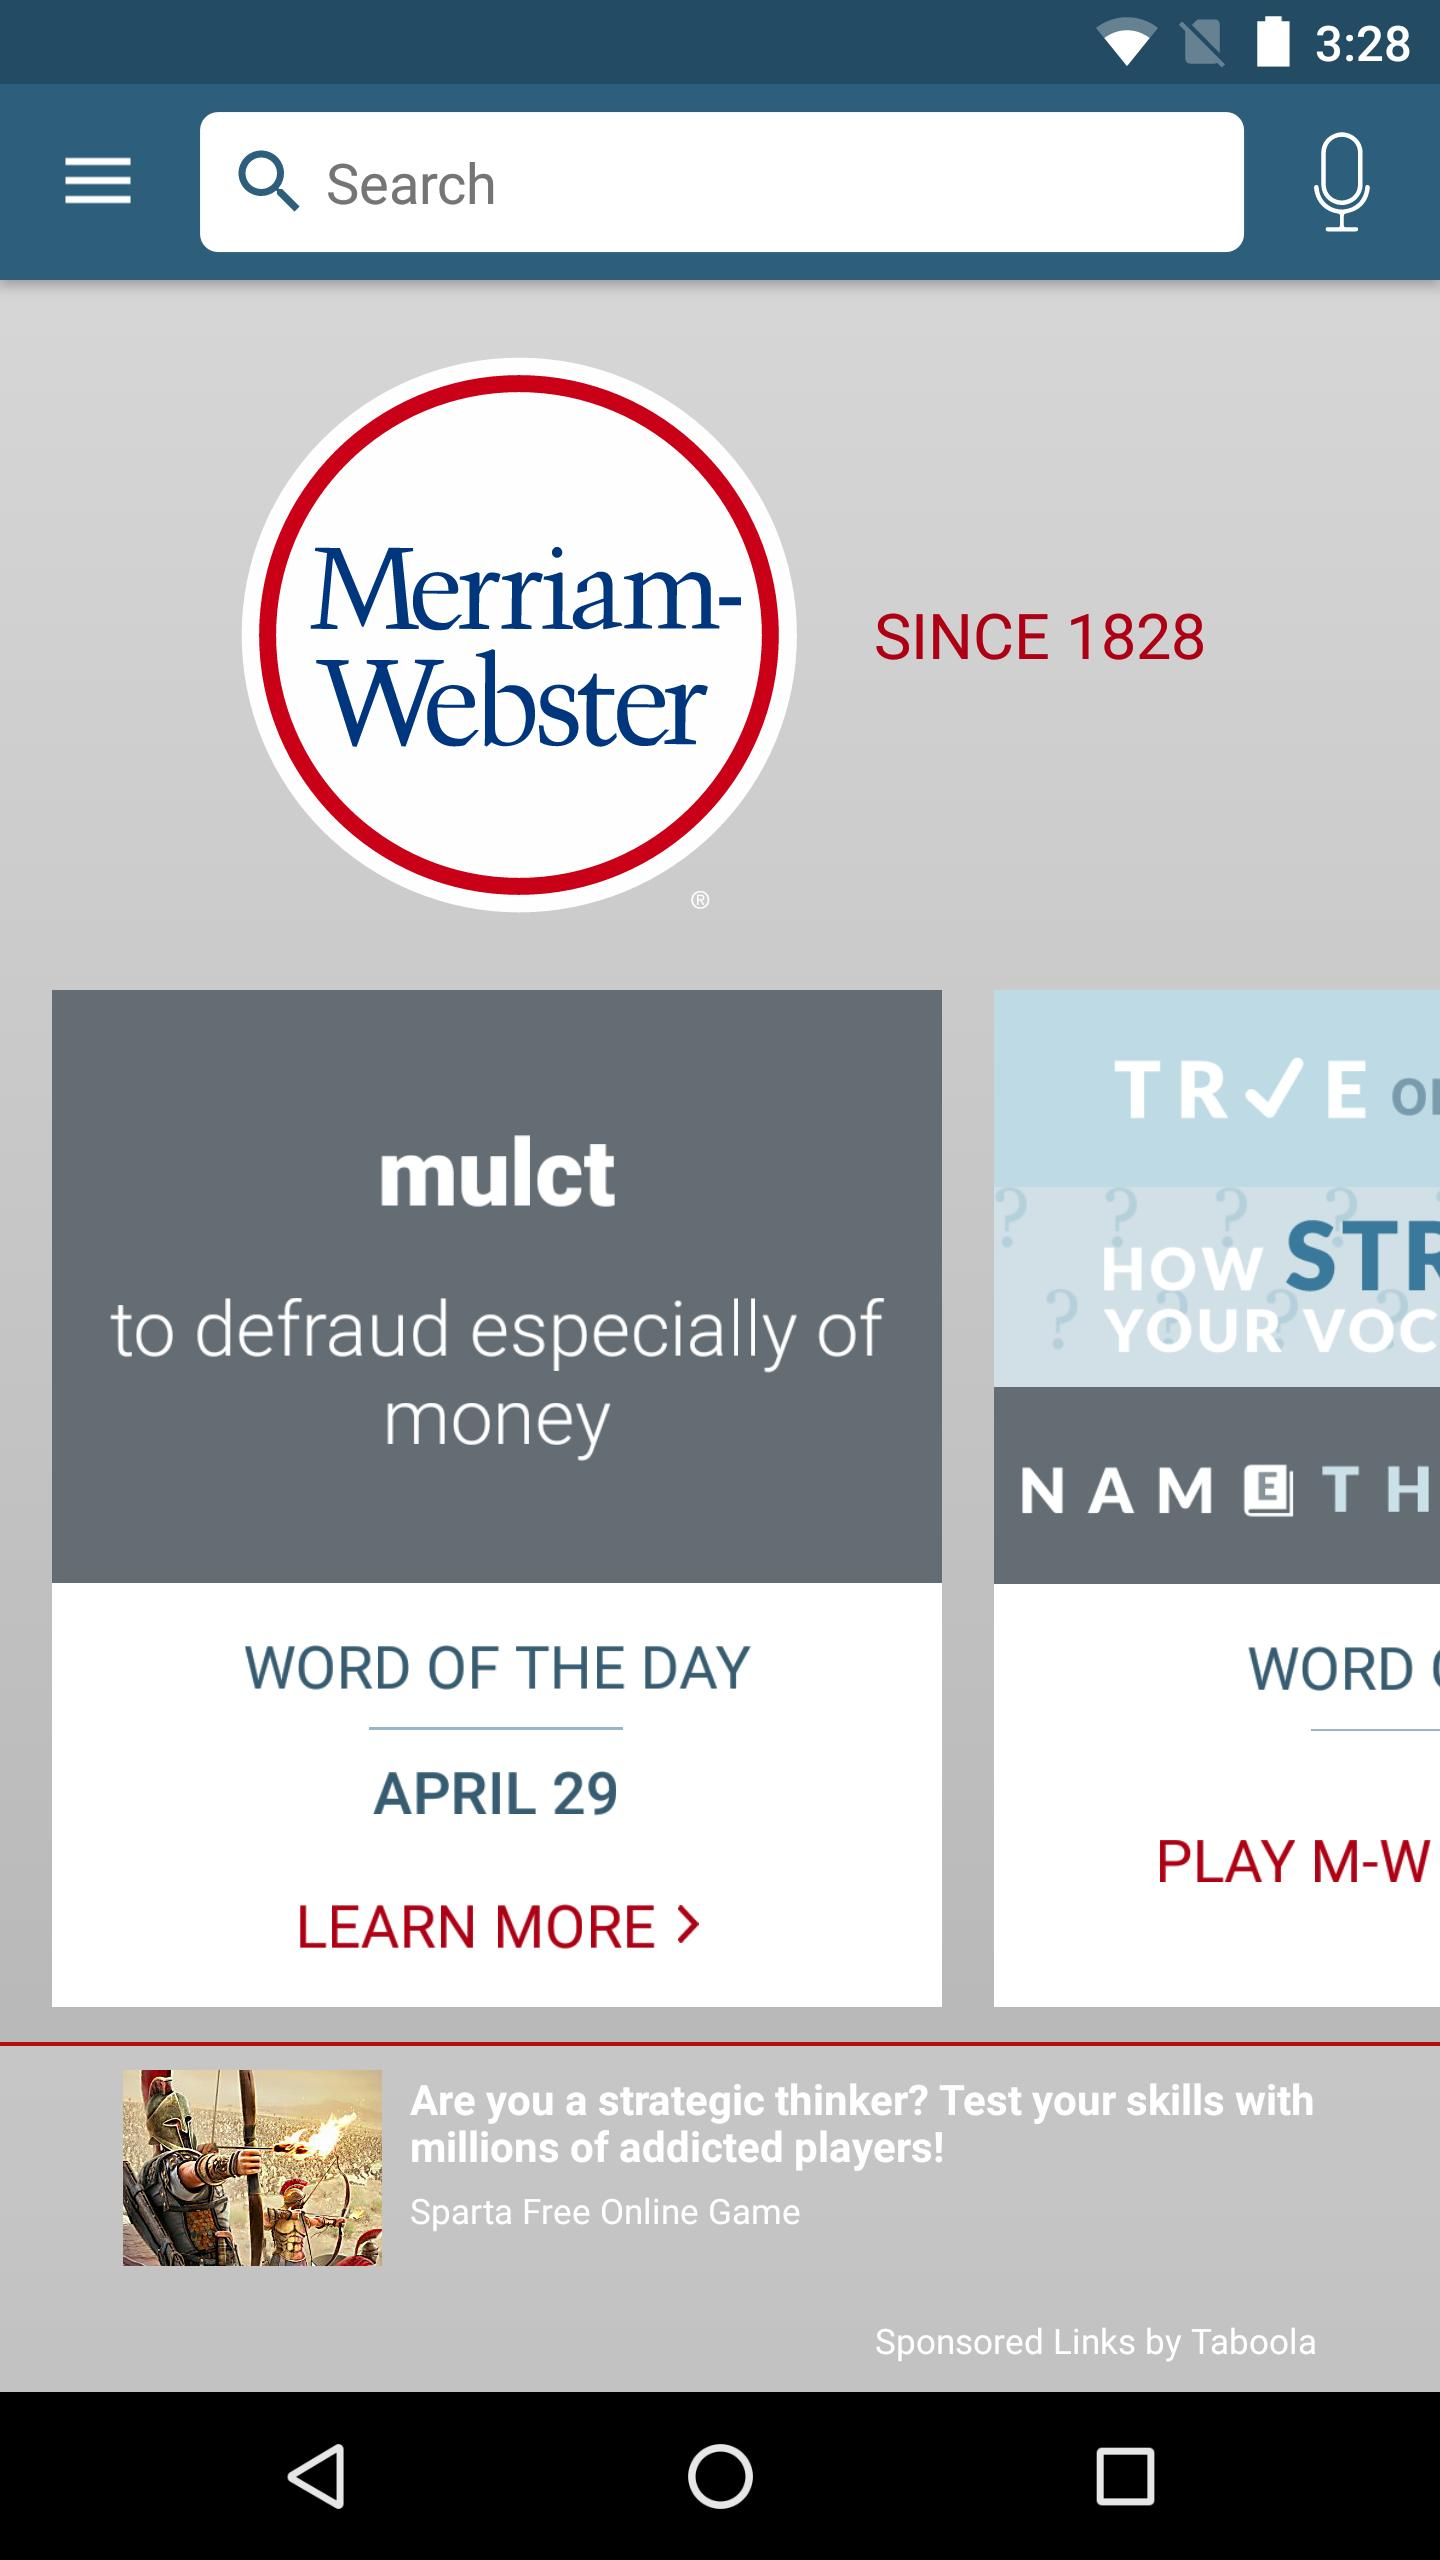 Dictionary - Merriam-Webster 4.3.4 Screenshot 1